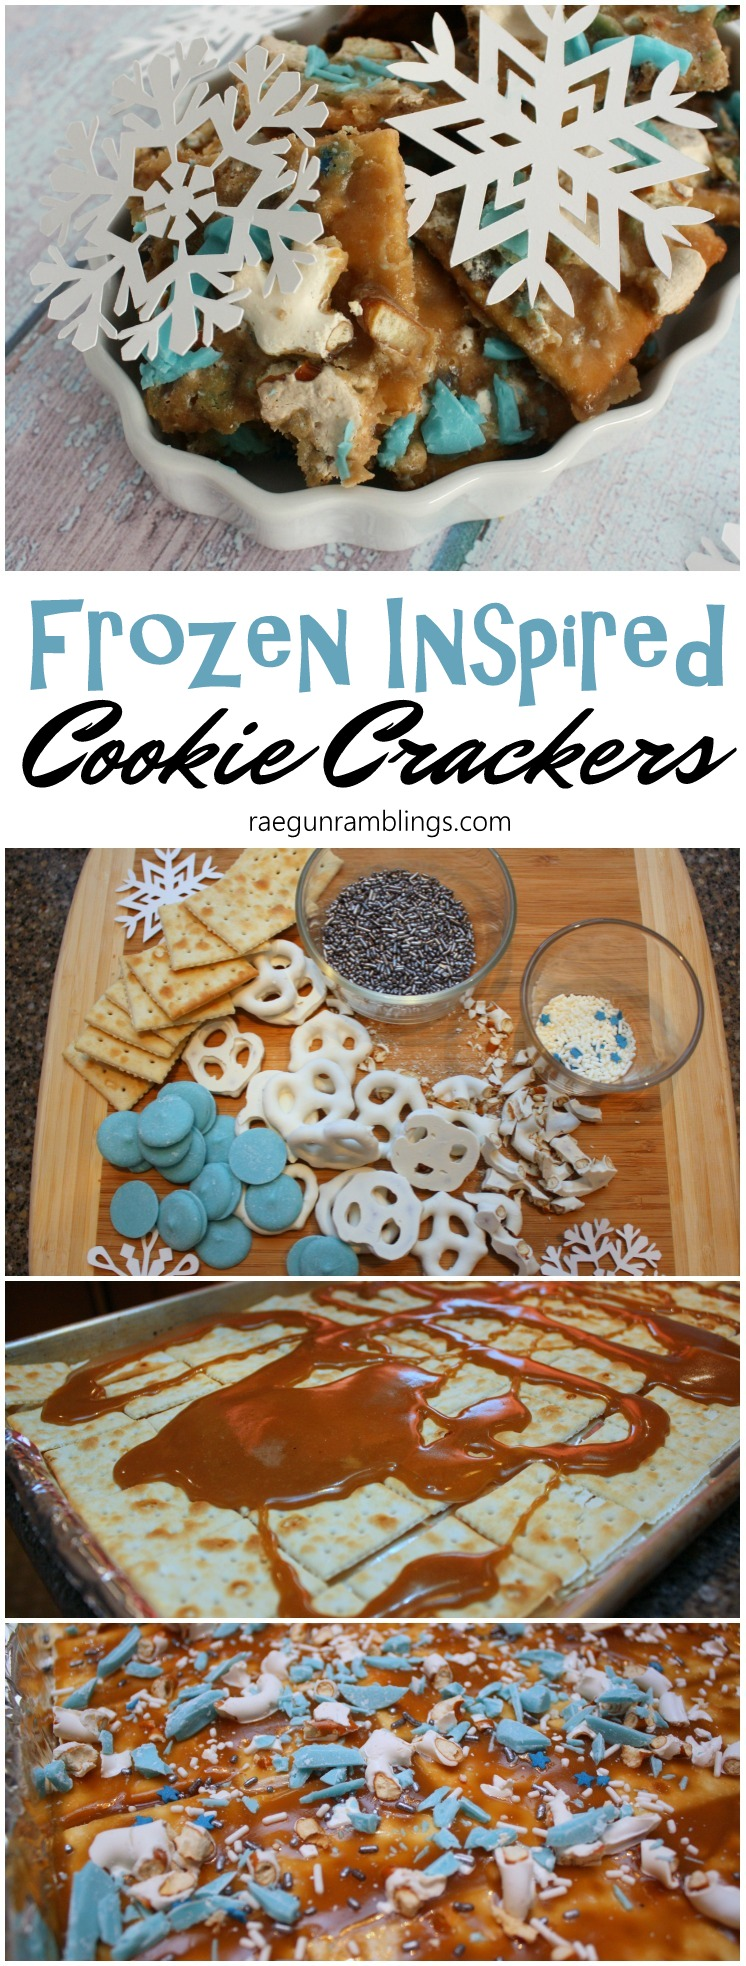 we love these super easy cookie crackers. great recipe to make with the kids. These Frozen inspired ones are extra cute